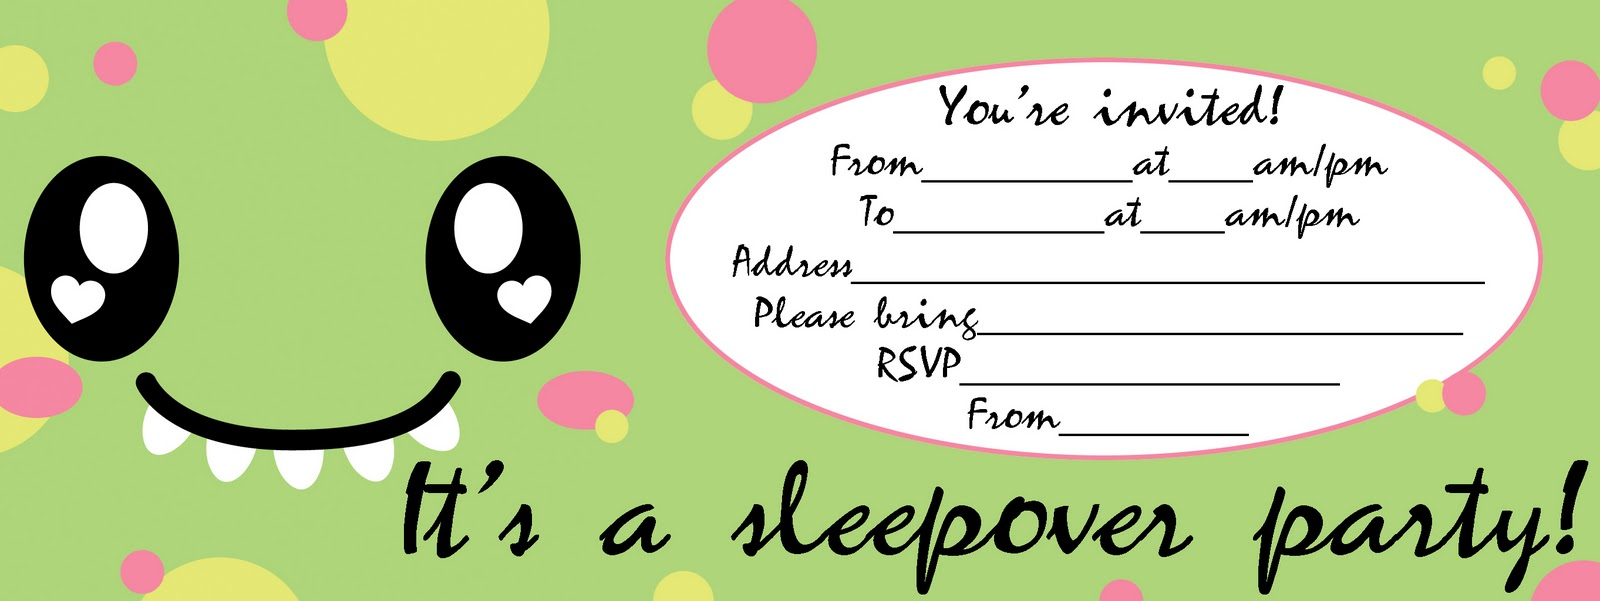 50 Beautiful Slumber Party Invitations | KittyBabyLove.com